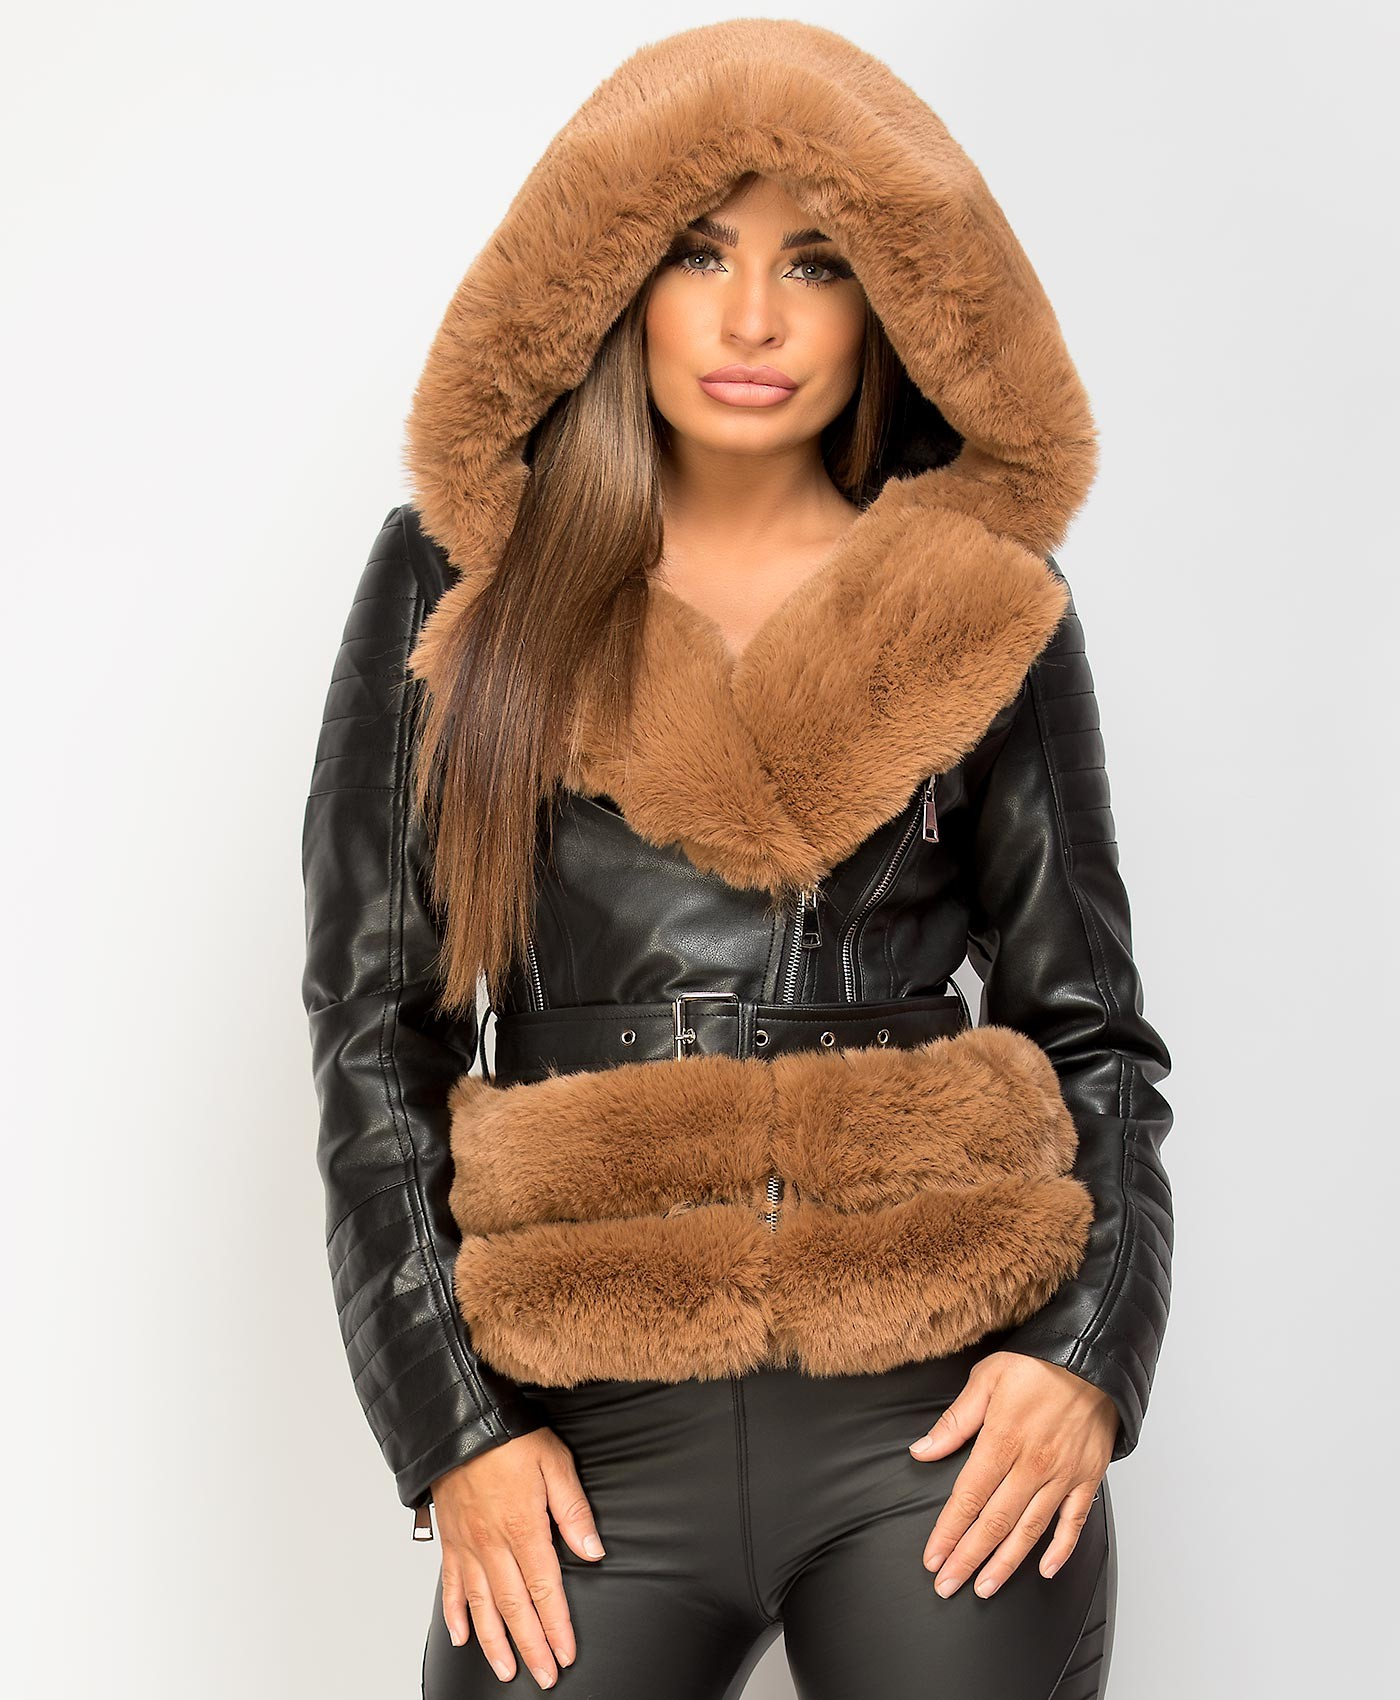 Black-Camel-PU-PVC-Faux-Fur-Hooded-Belted-Biker-Jacket-1